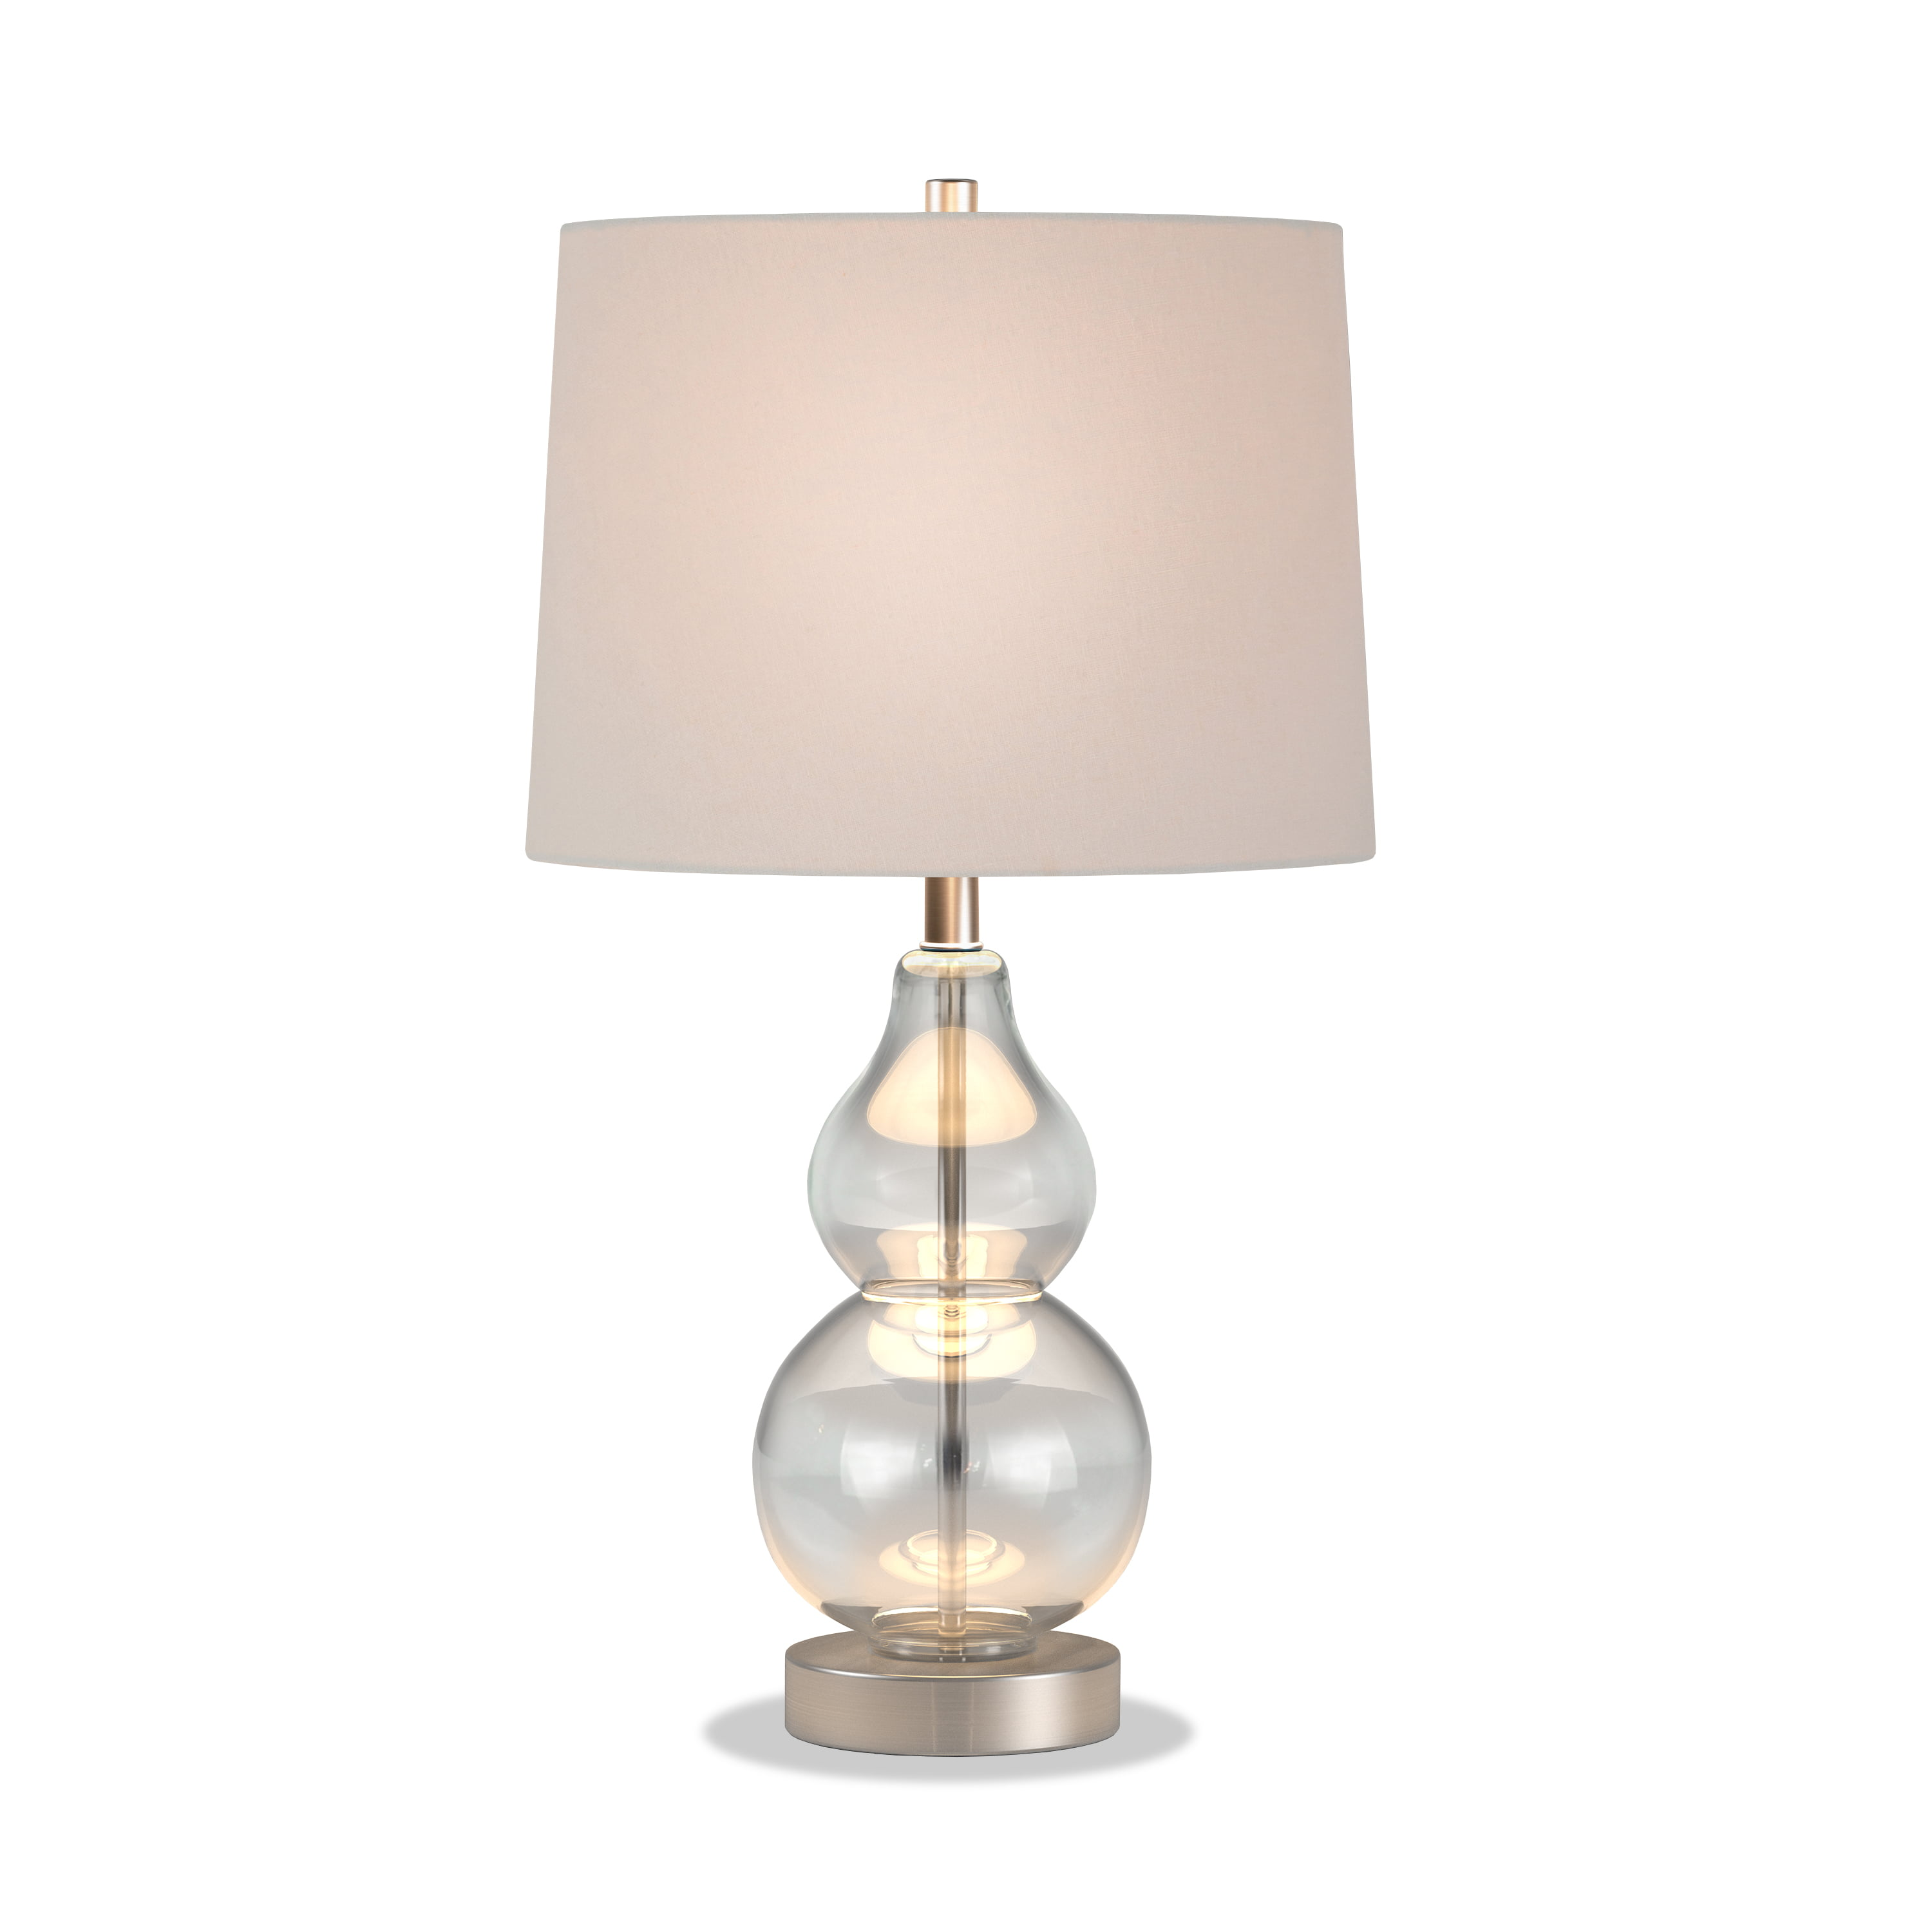 Evelyn Zoe Traditional Metal Petite Table Lamp With Satin Nickel Accents Walmart Com Walmart Com